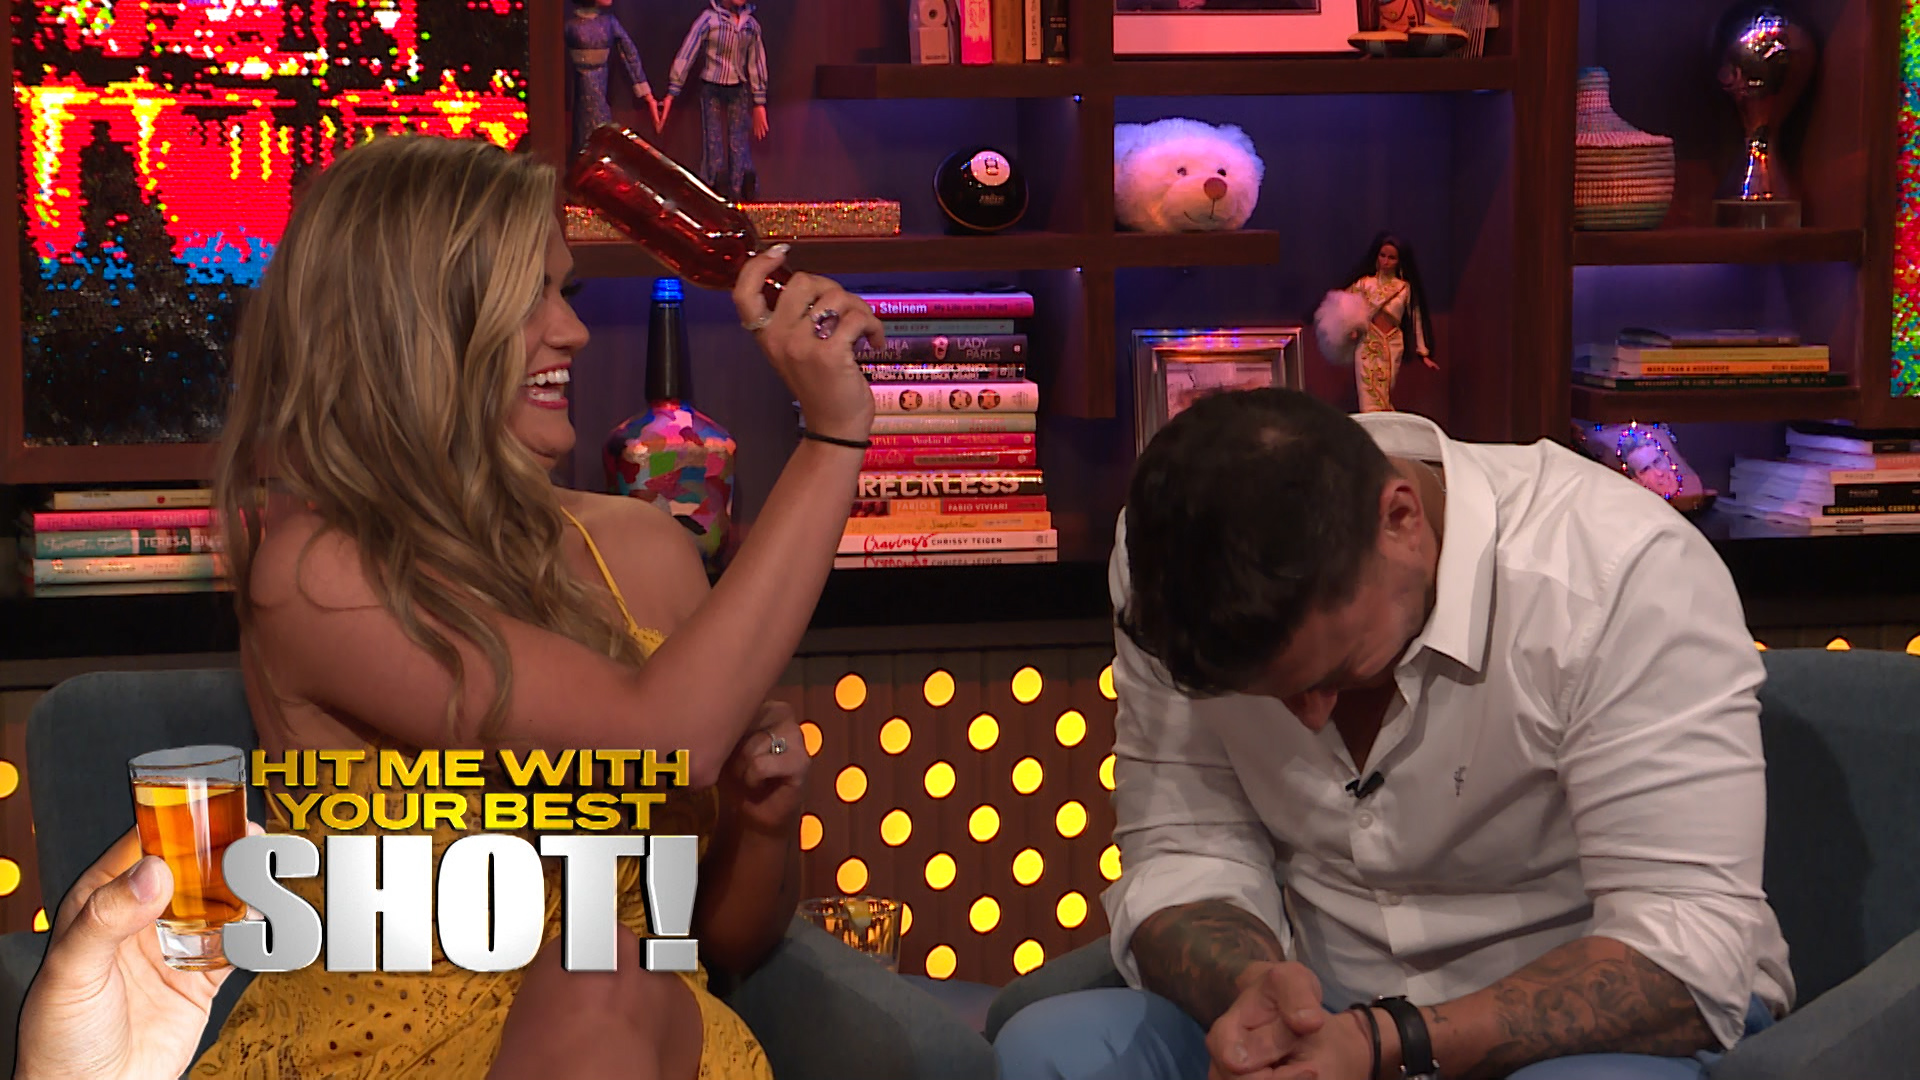 Vanderpump Rules Trivia with Jax Taylor and Brittany Cartwright